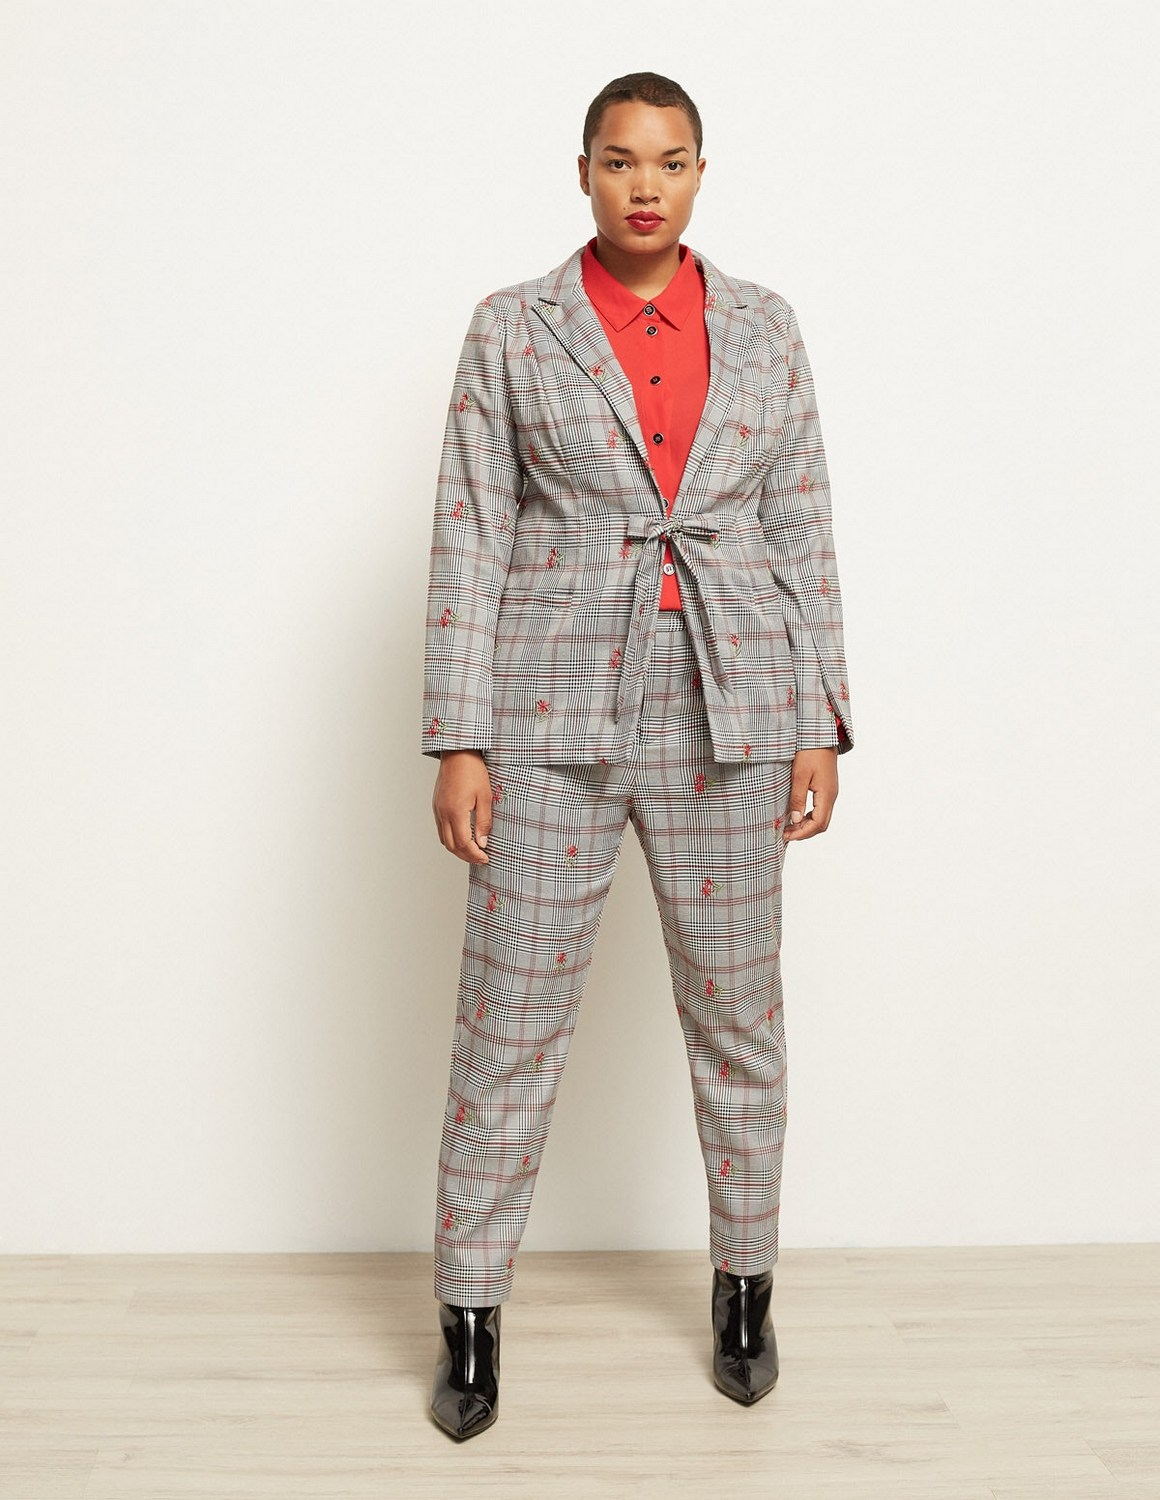 Plus Size Suiting for Spring- Manon Baptiste Embroidered Check Blazer & Trousers